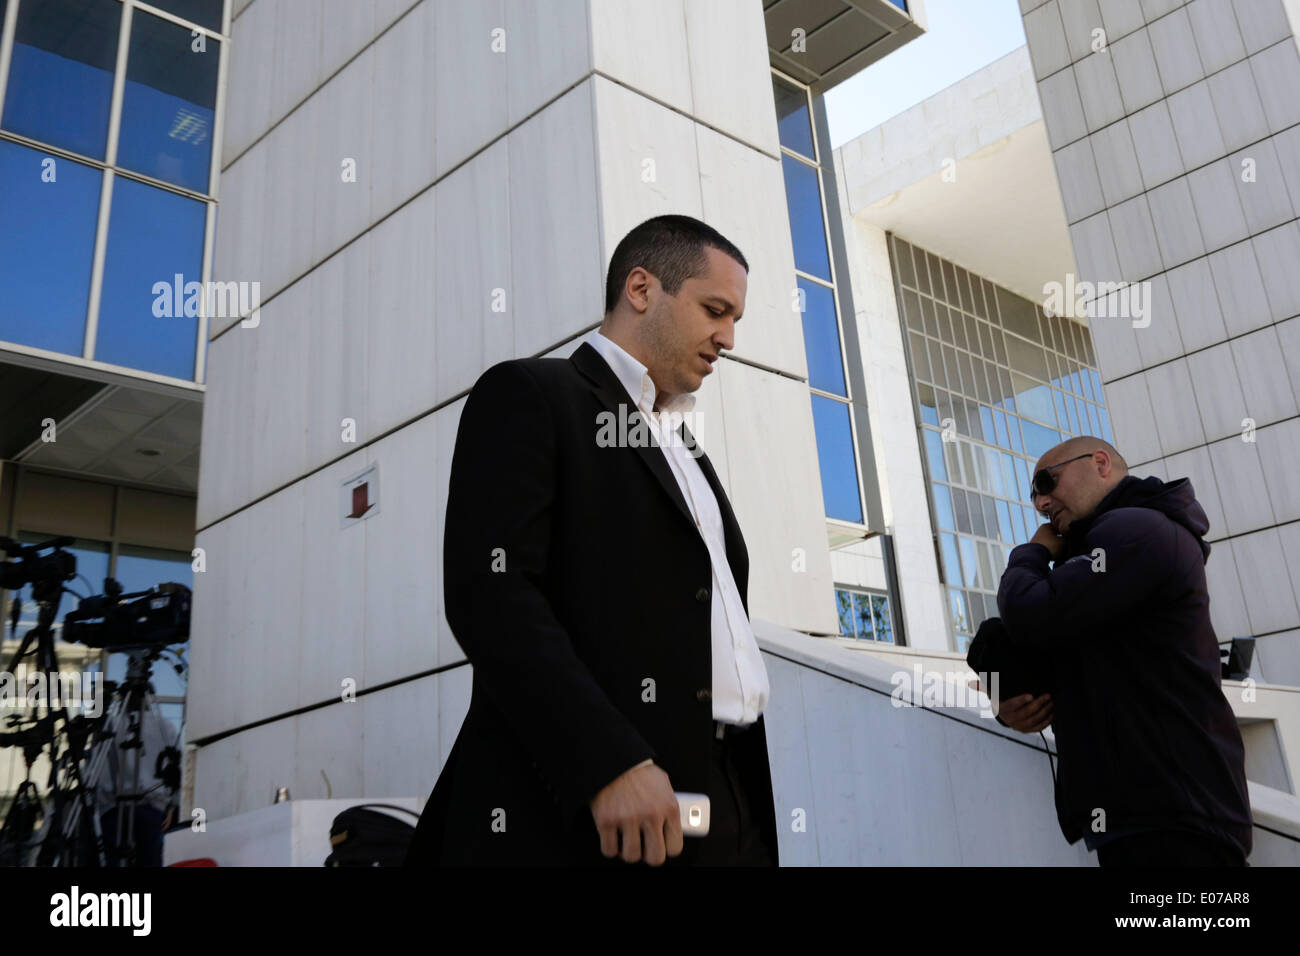 Athens, Greece. 5th May 2014. Golden Dawn's MP Ilias Kasidiaris departs from the Athens Supreme Court. Golden Dawn MPs were invited by the Special Appellate magistrate, to account for the category of membership and directing a criminal organization. Athens, Greece on May 5, 2014. Credit:  Konstantinos Tsakalidis/Alamy Live News - Stock Image